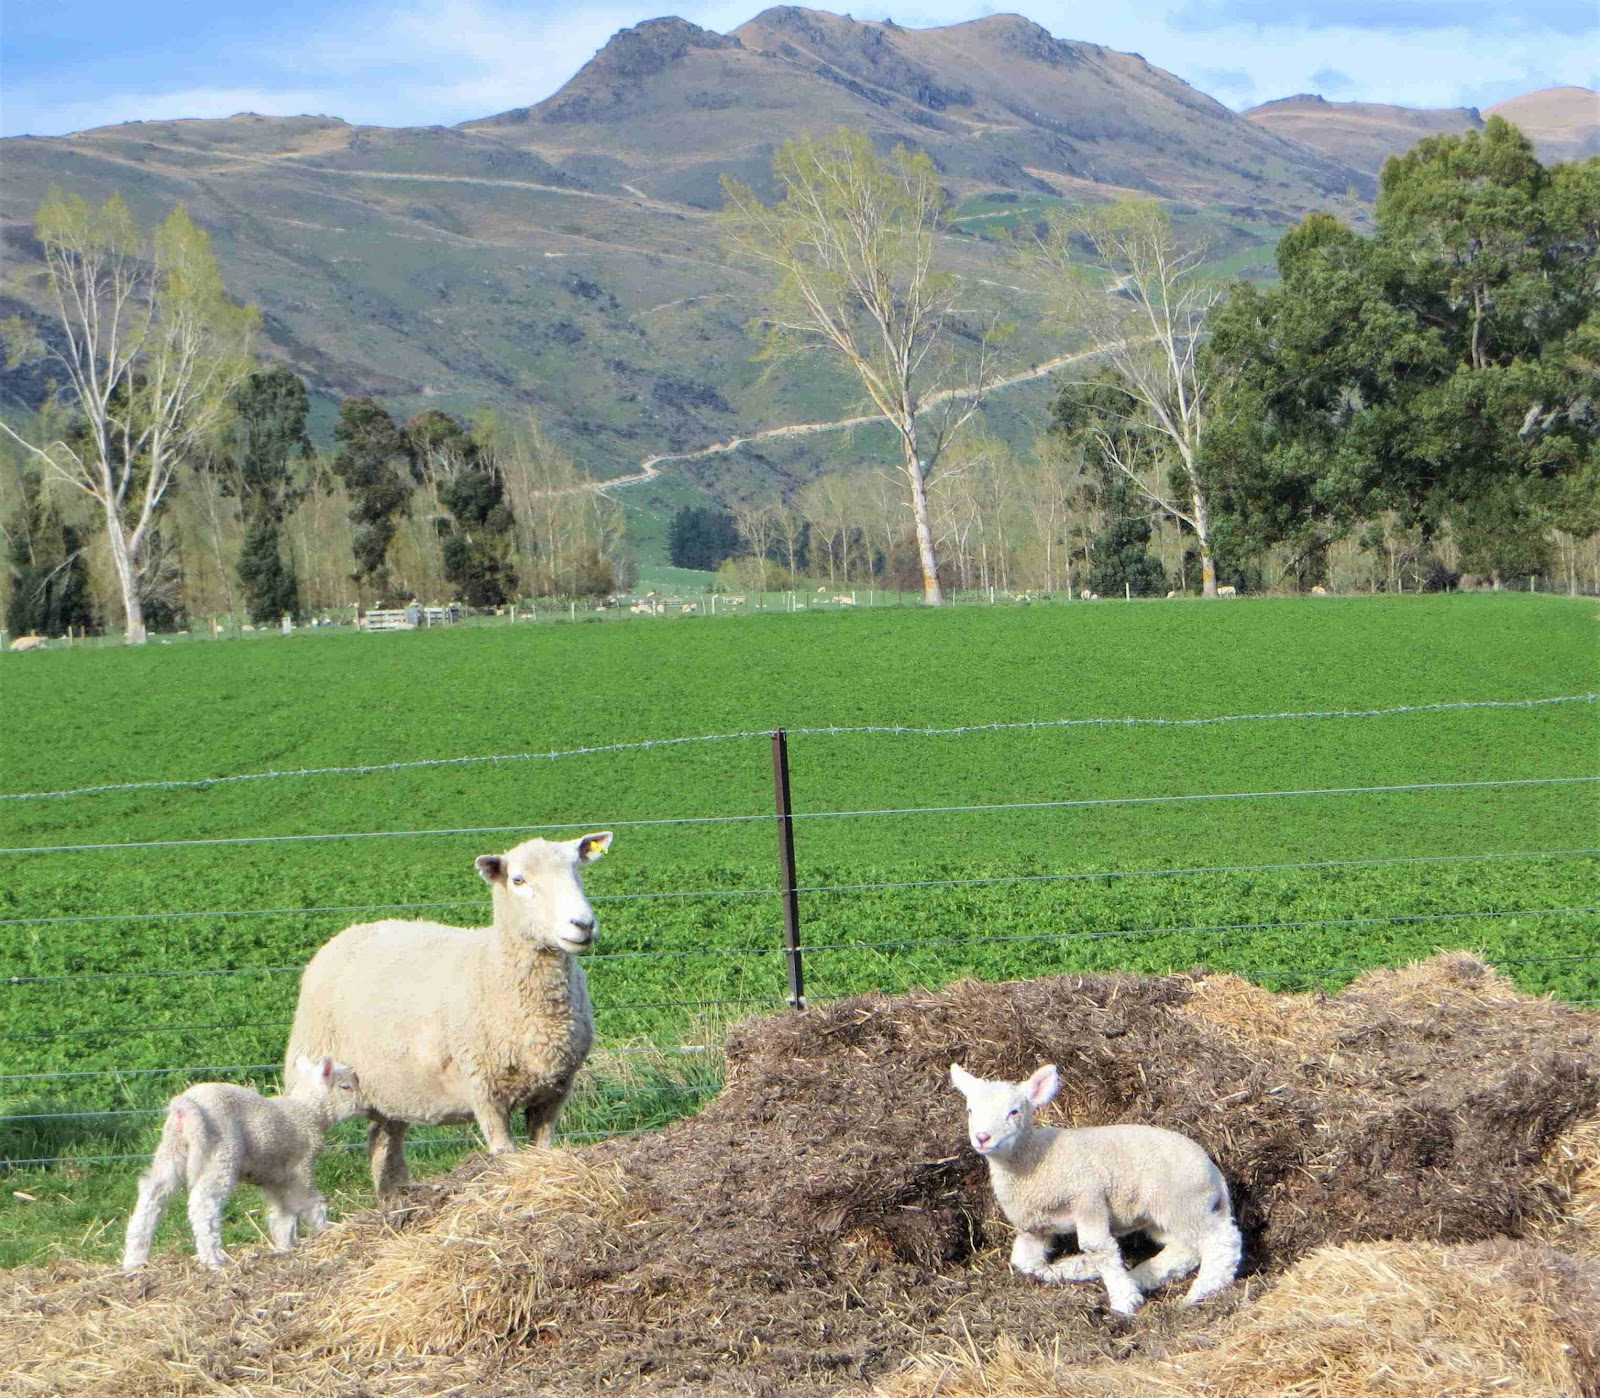 Ewe and lambs in front of the lucerne paddock, which is growing one of next winter's feed crop.